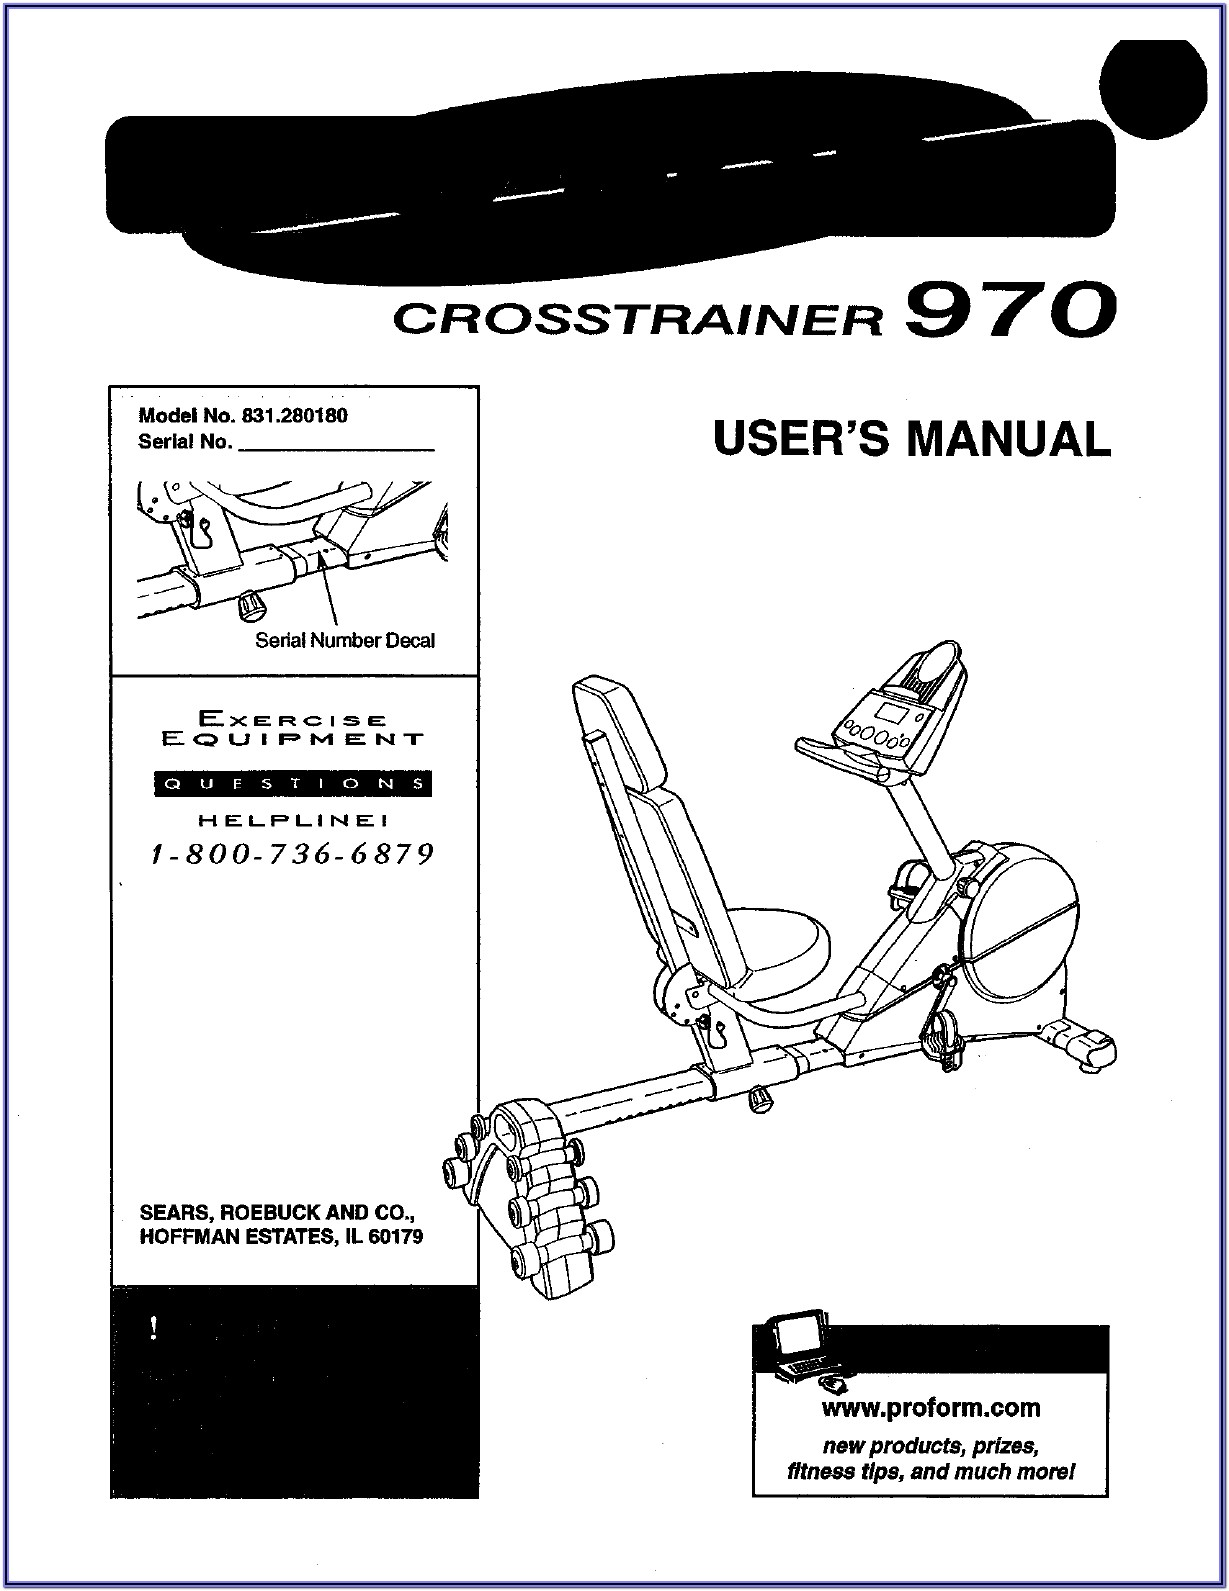 Proform Crosstrainer 970